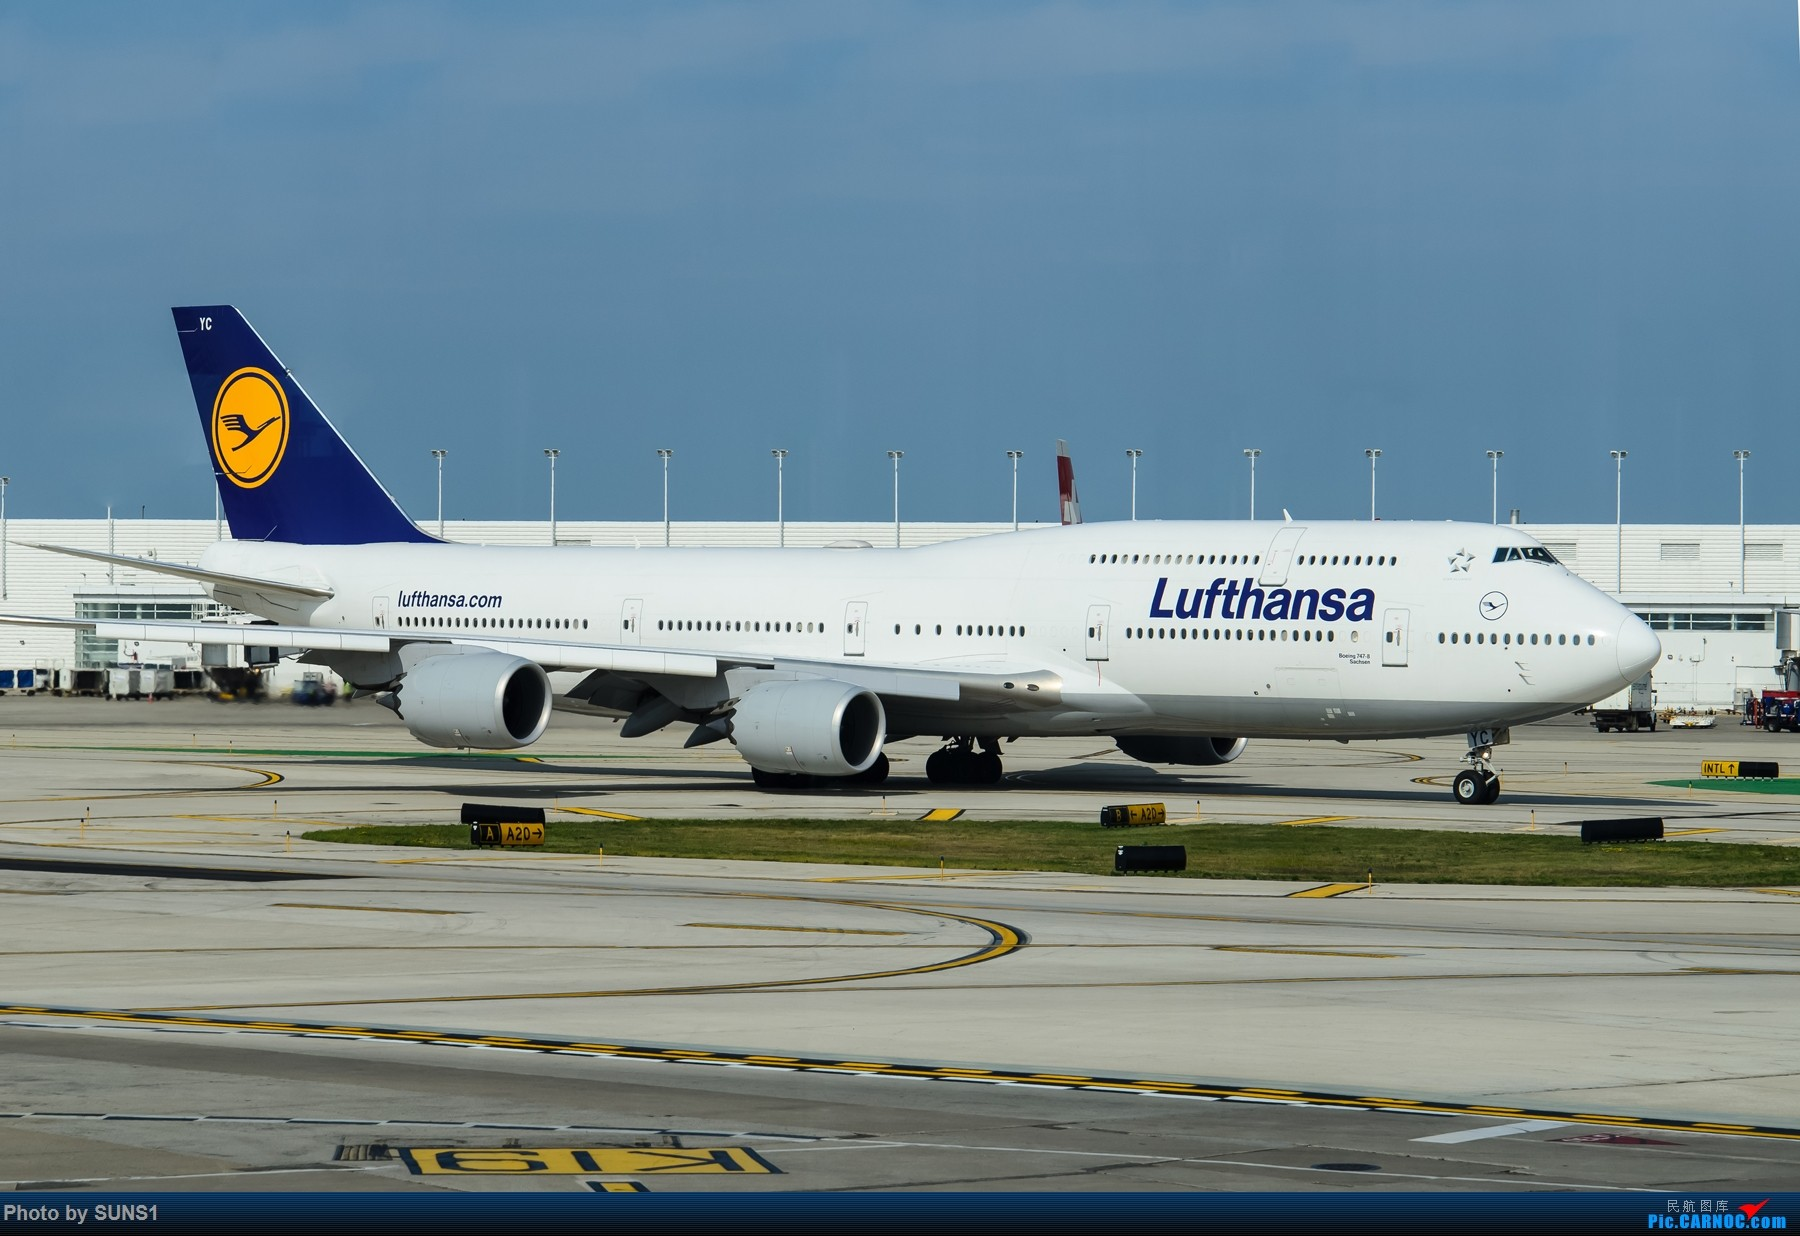 ?9abyc???(`9.'y?Z?Y_re:试试1800的大图—ua787 ib346 lh748 af380 boeing 747-8i d-abyc